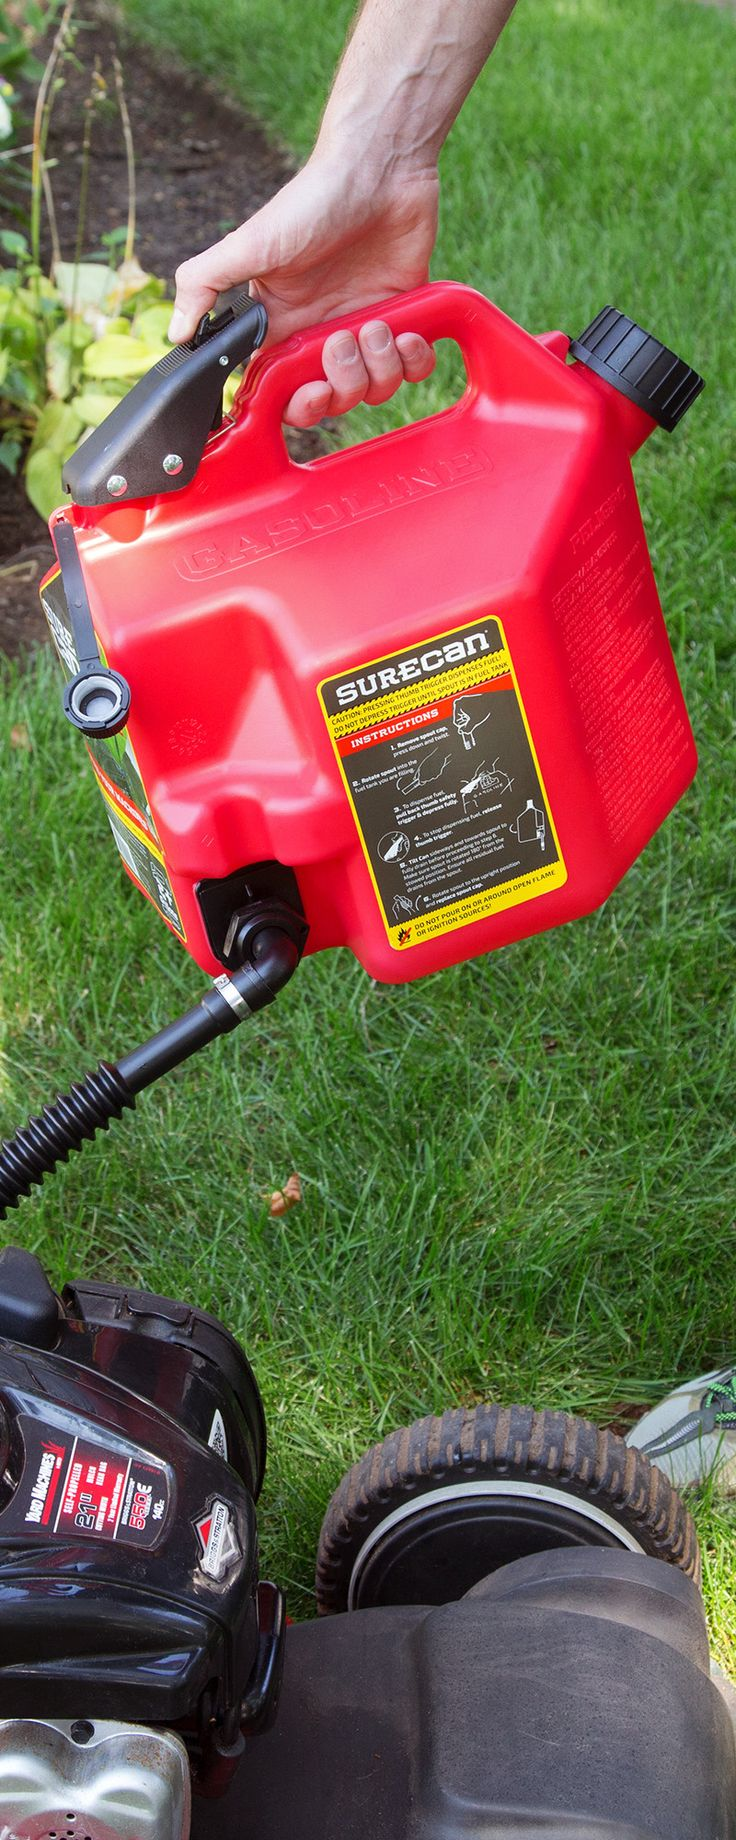 Filling up is easier and safer with this no-spill gas can. Fuel is dispensed from the bottom of the durable container, eliminating heavy lifting. An easy-to-angle flexible spout and a trigger release system give you better control over filling and pouring (and an added measure of safety).